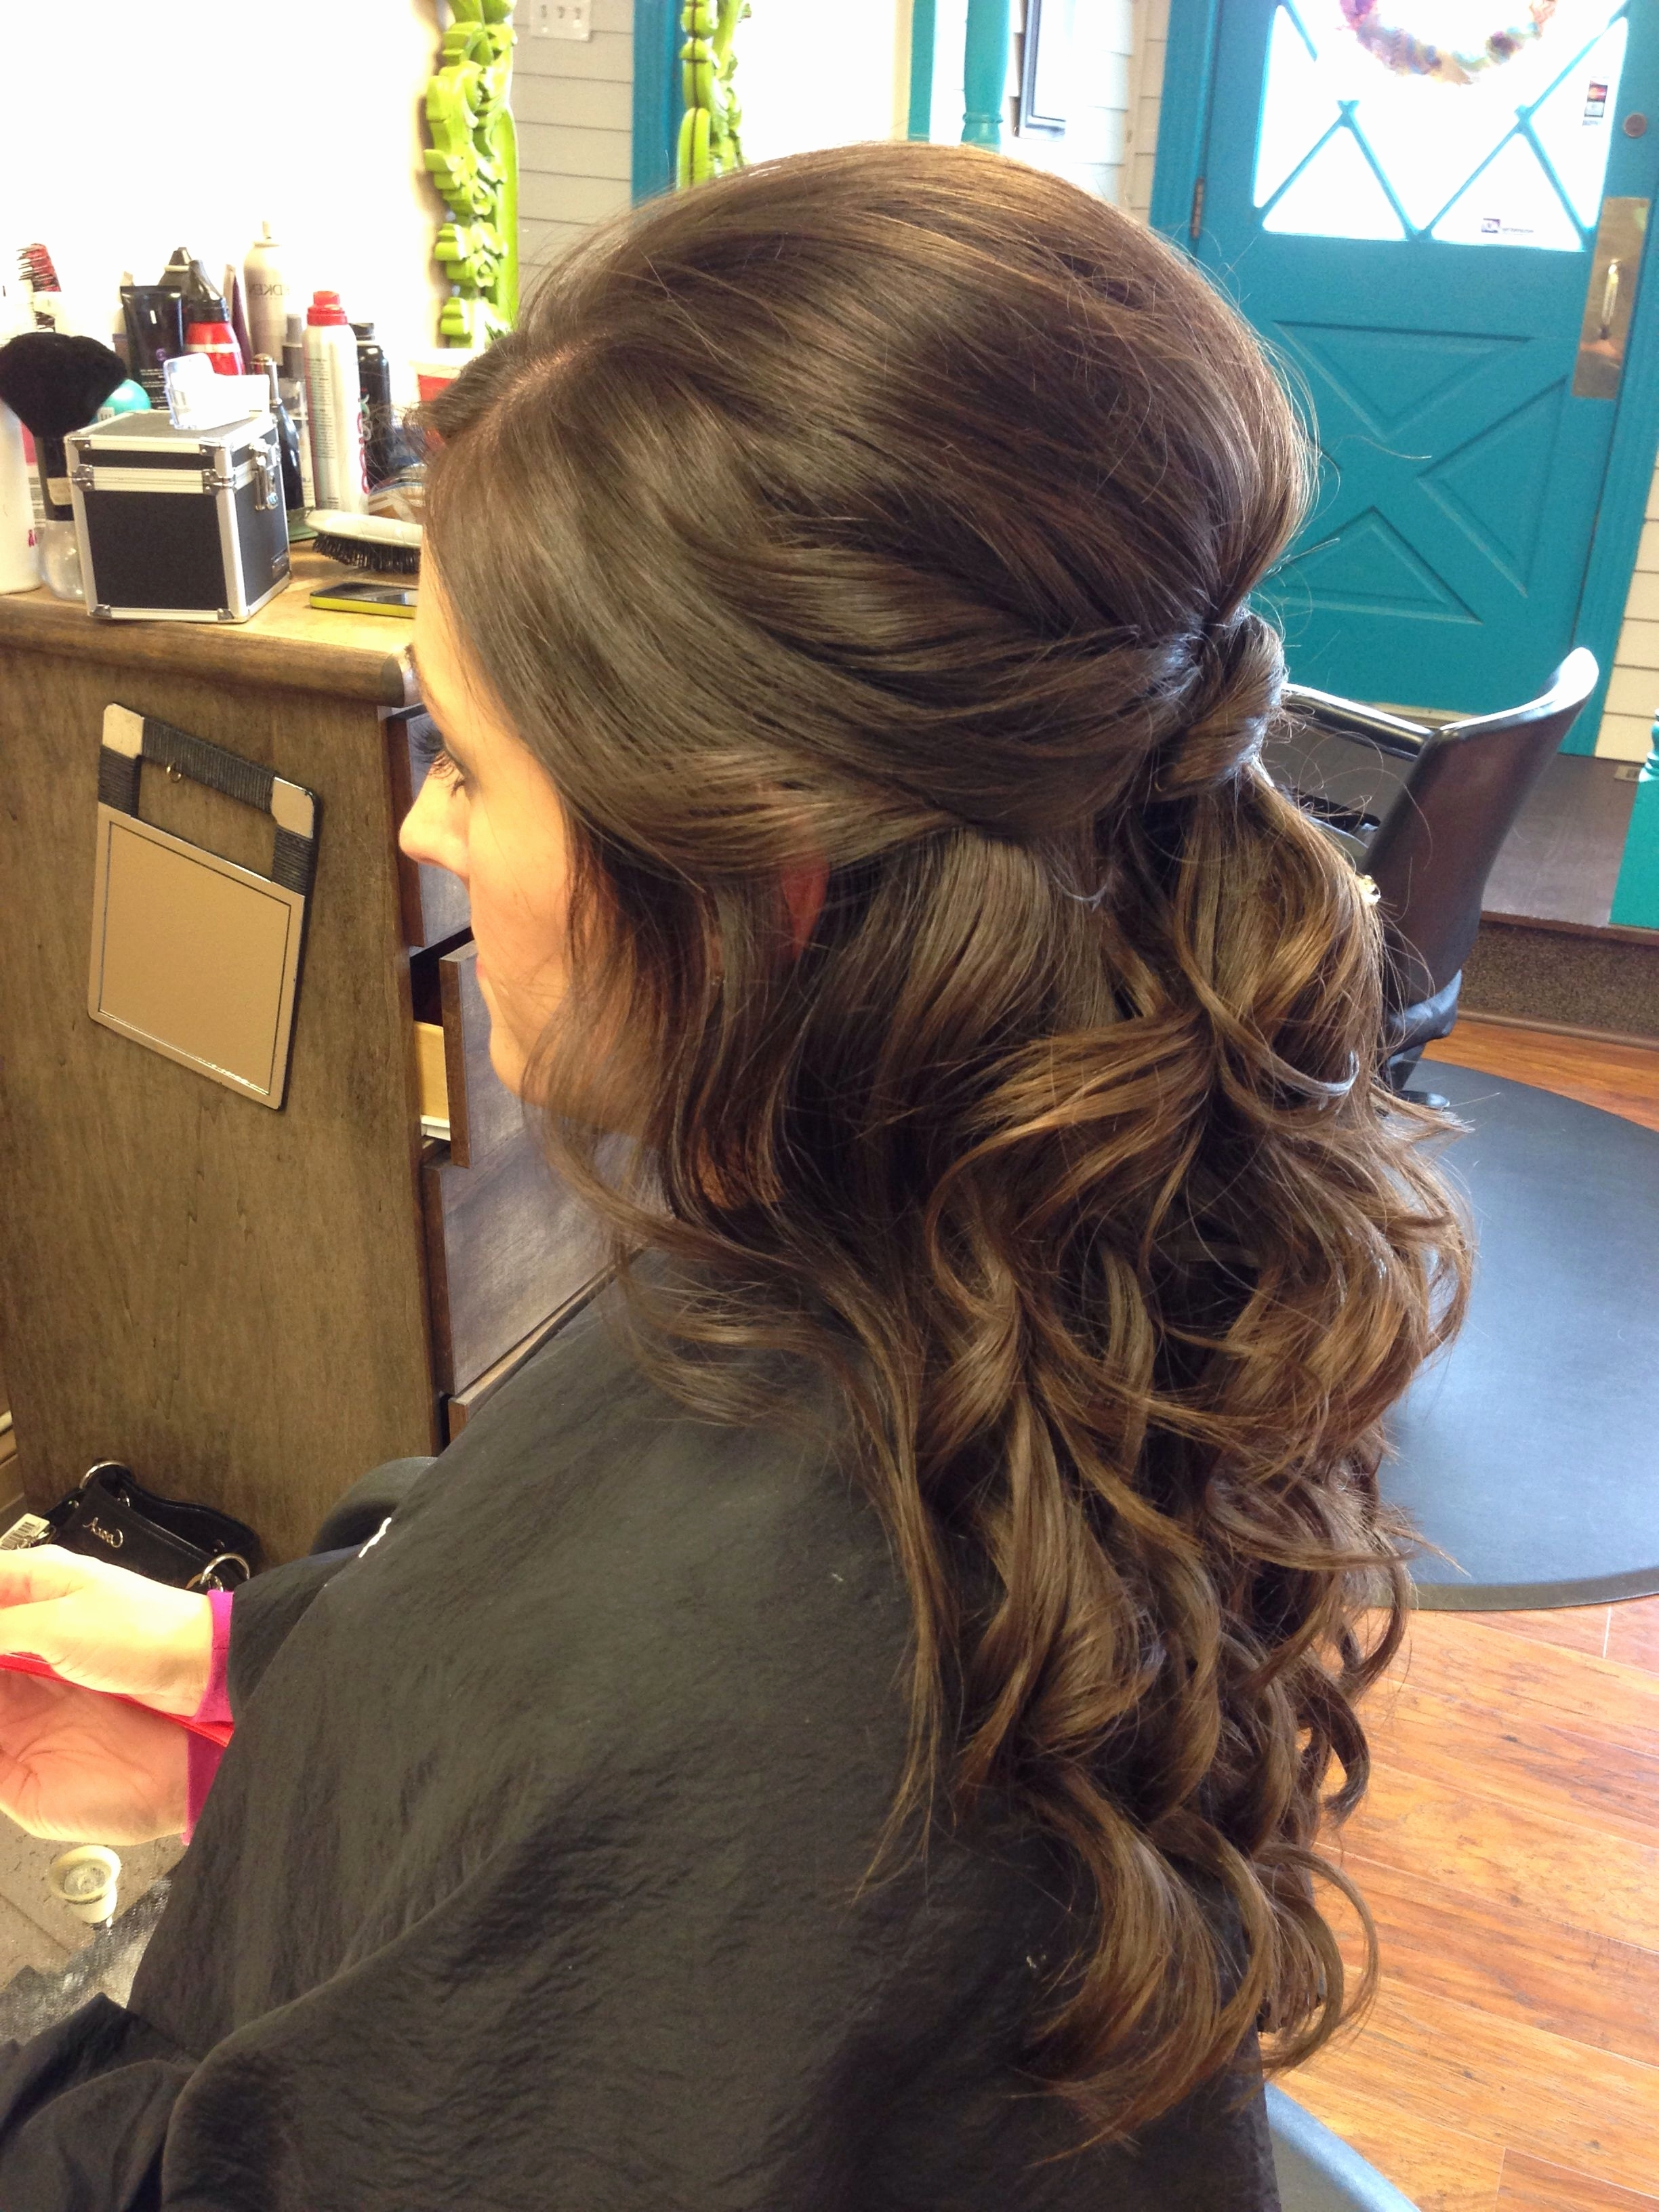 Half Up Half Down Hairstyles For Wedding Guest Awesome Wedding Inside Fashionable Wedding Guest Hairstyles For Long Hair Down (View 9 of 15)